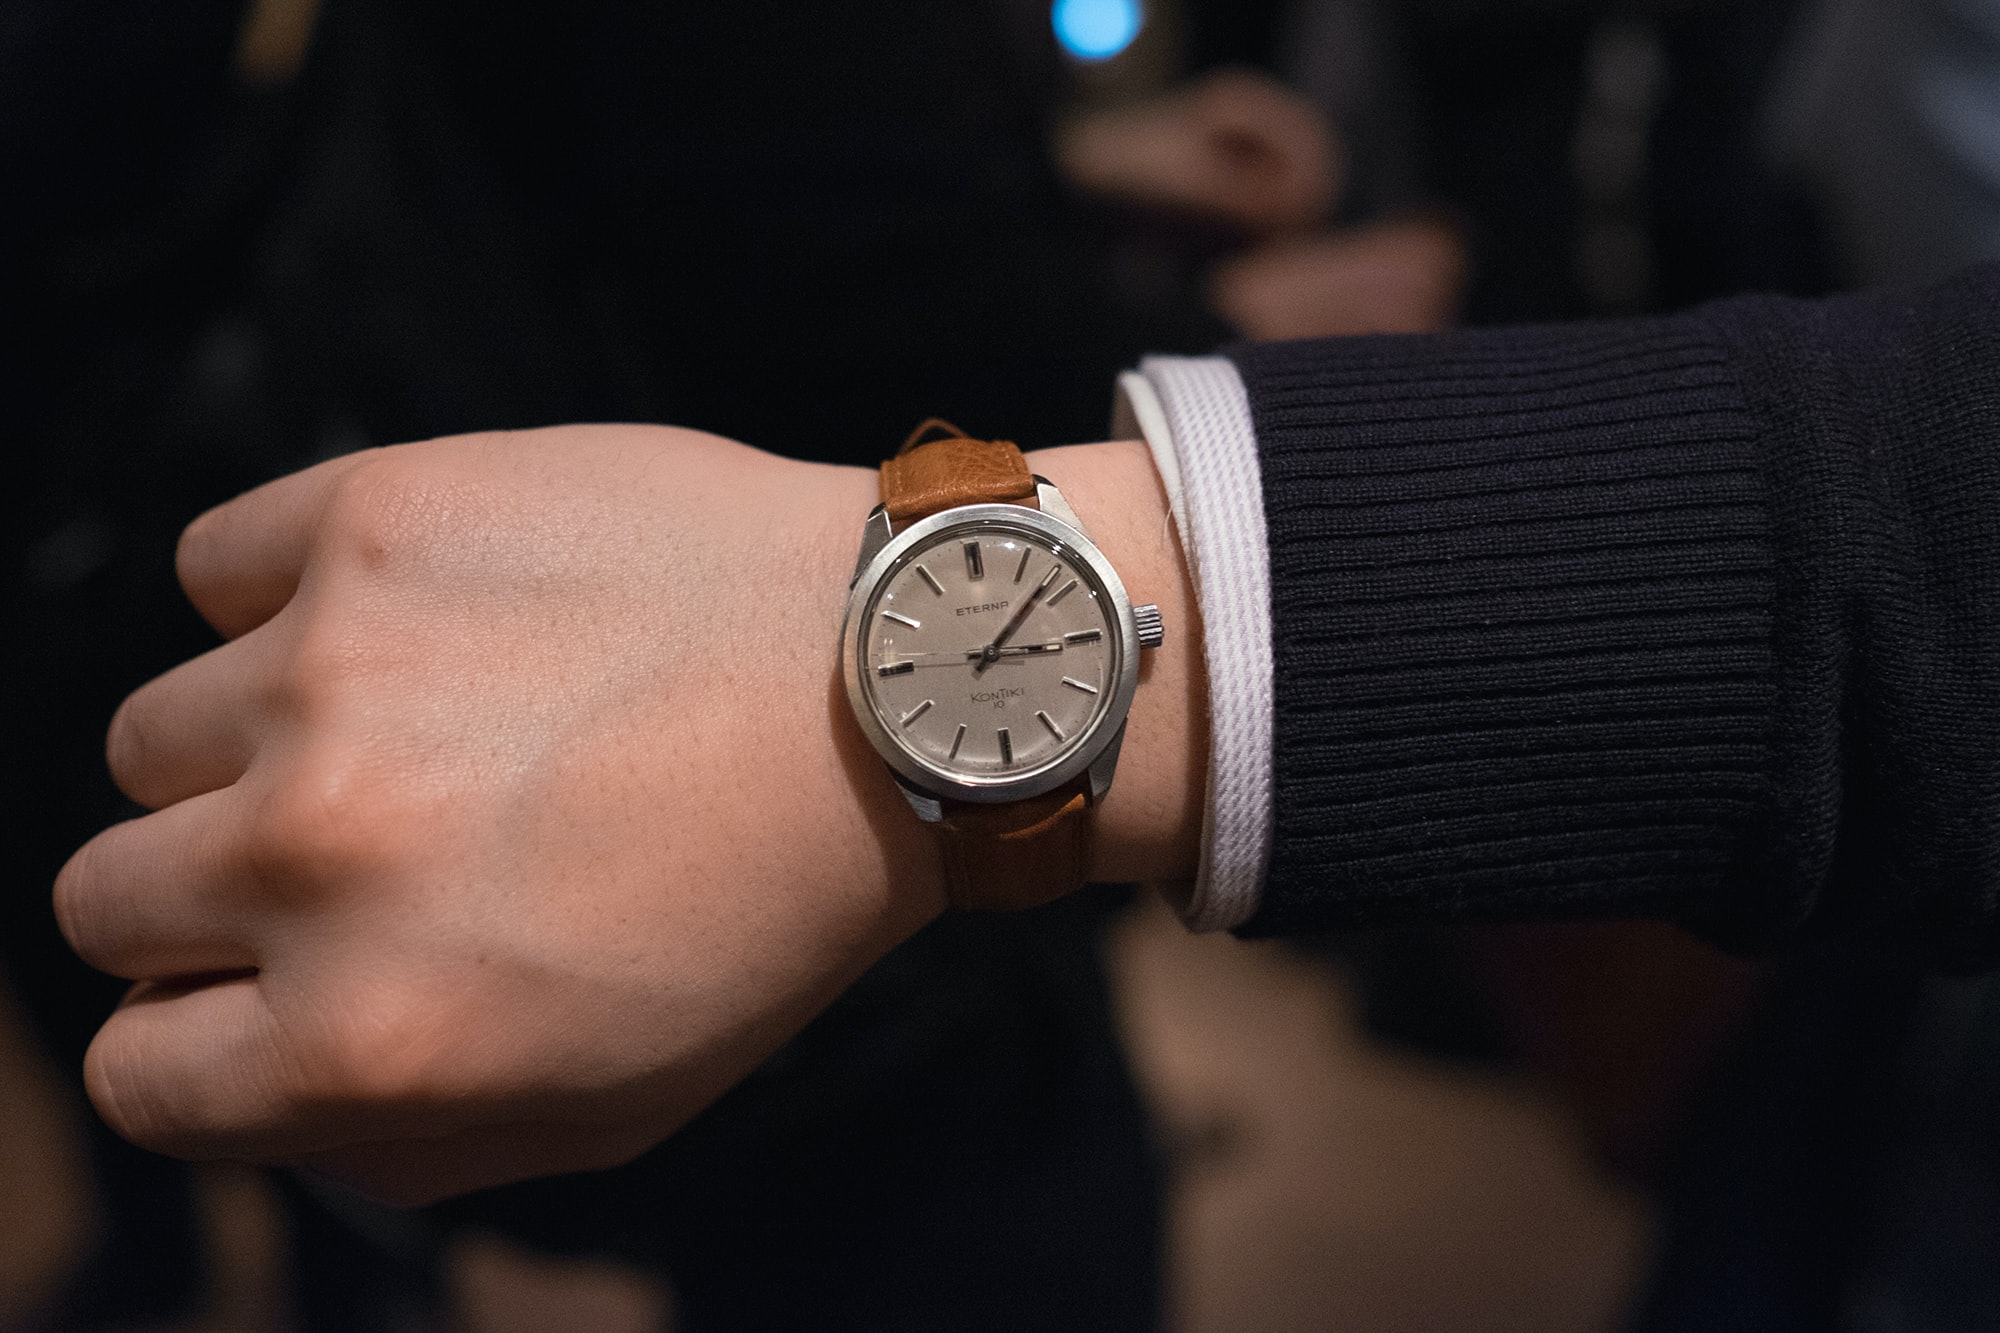 Photo Report: Watch Spotting At The HODINKEE Meet-Up In London (Plus Our Holiday 2016 Pop-Up At Harrods) Photo Report: Watch Spotting At The HODINKEE Meet-Up In London (Plus Our Holiday 2016 Pop-Up At Harrods) Hodinkee event 29 nov 2016 32